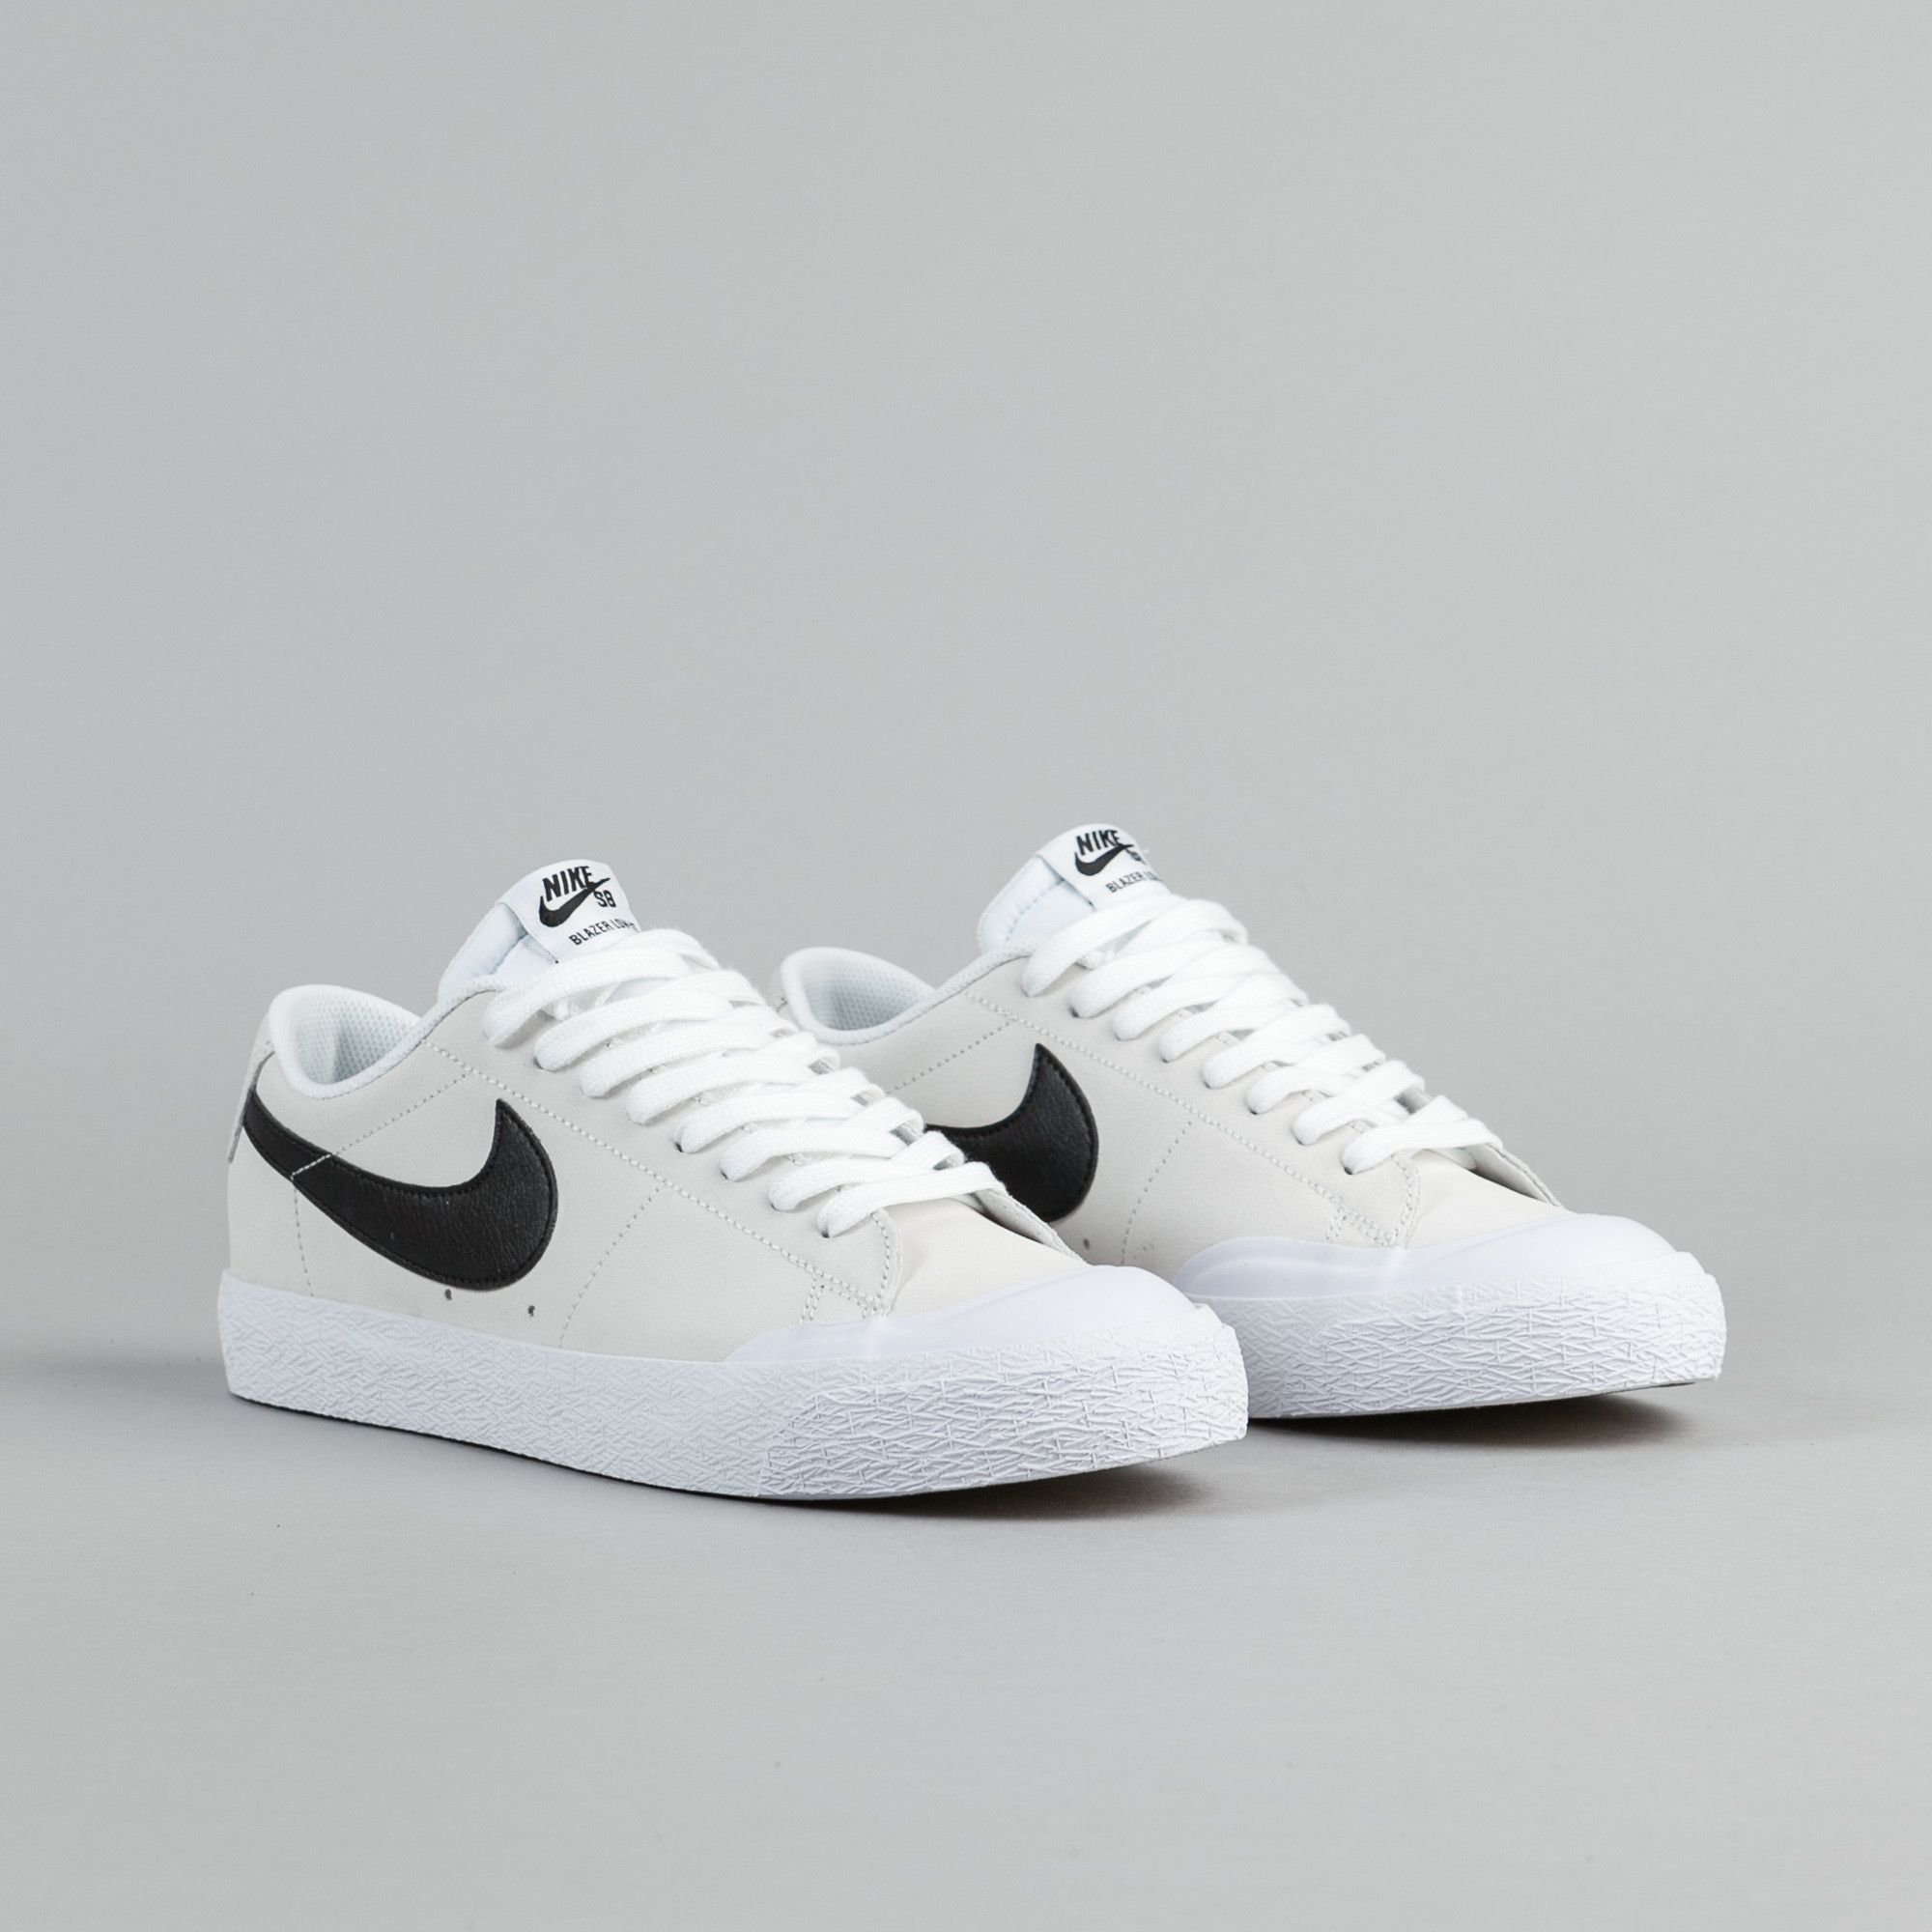 on sale 07b68 8192b Nike SB Blazer Low XT Shoes - Summit White   Black - White - Gum Light Brown